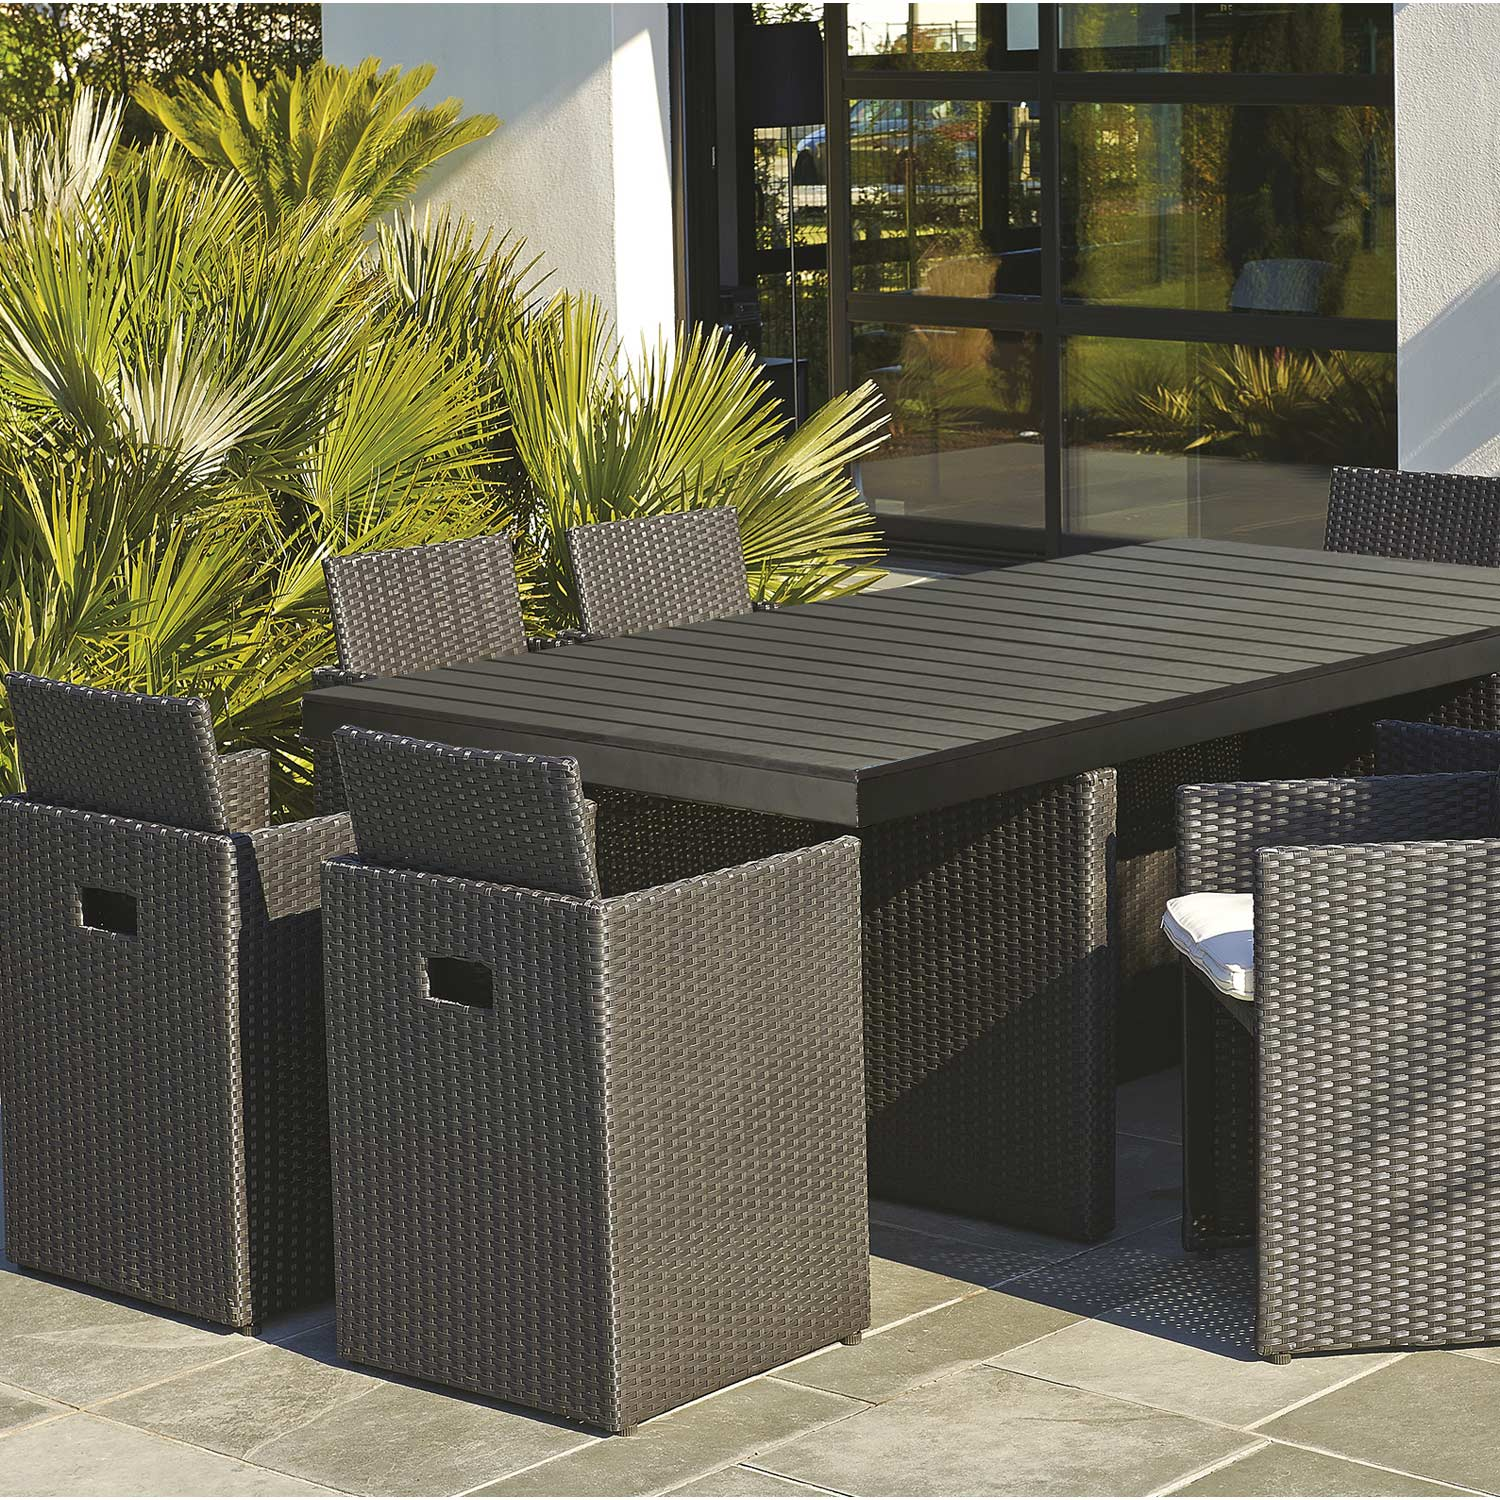 Salon de jardin encastrable r sine tress e noir 1 table for Salon de jardin 10 personnes